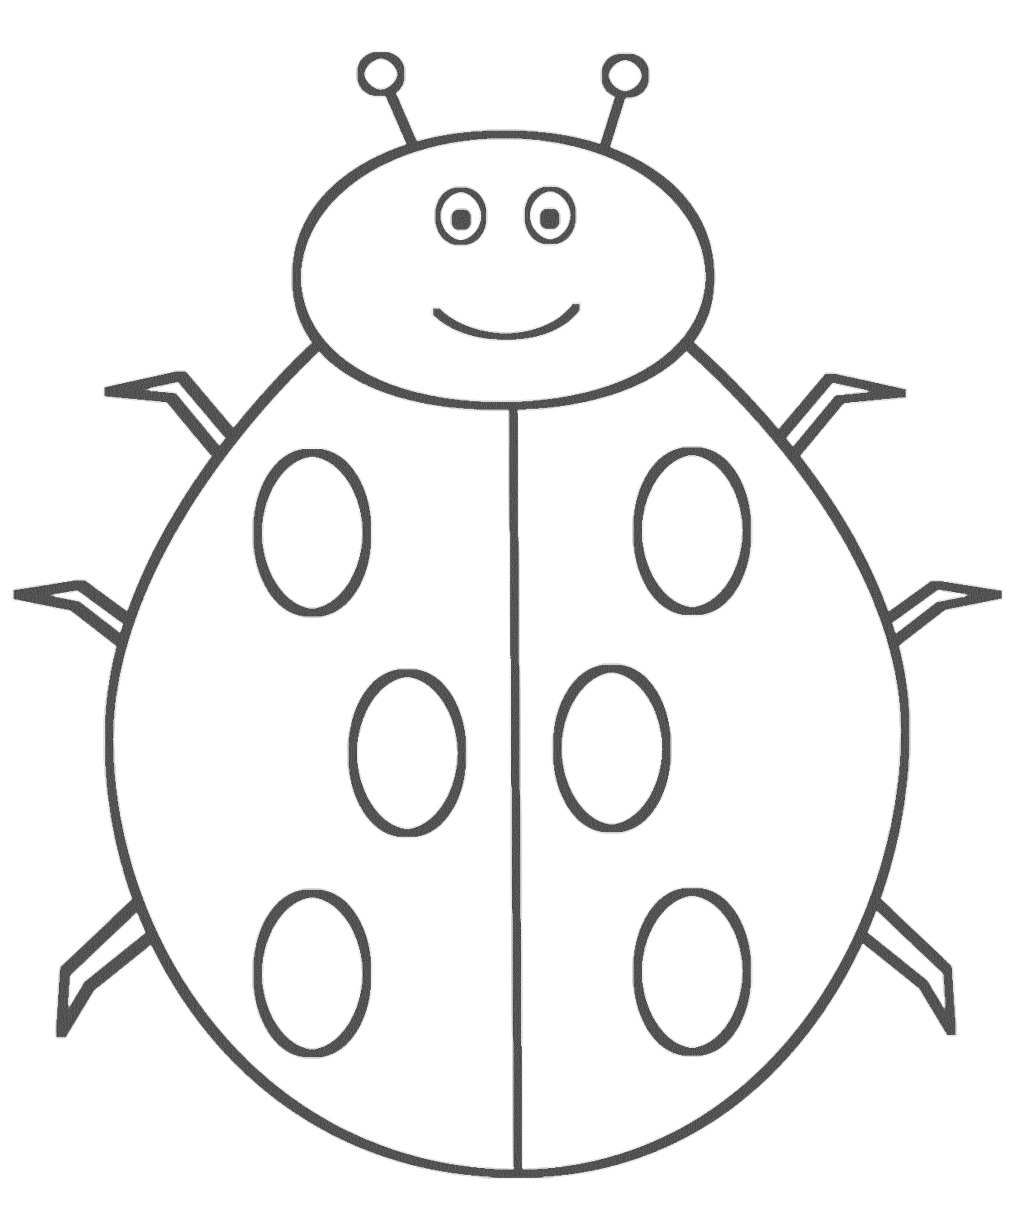 Universal image regarding ladybug printable coloring pages